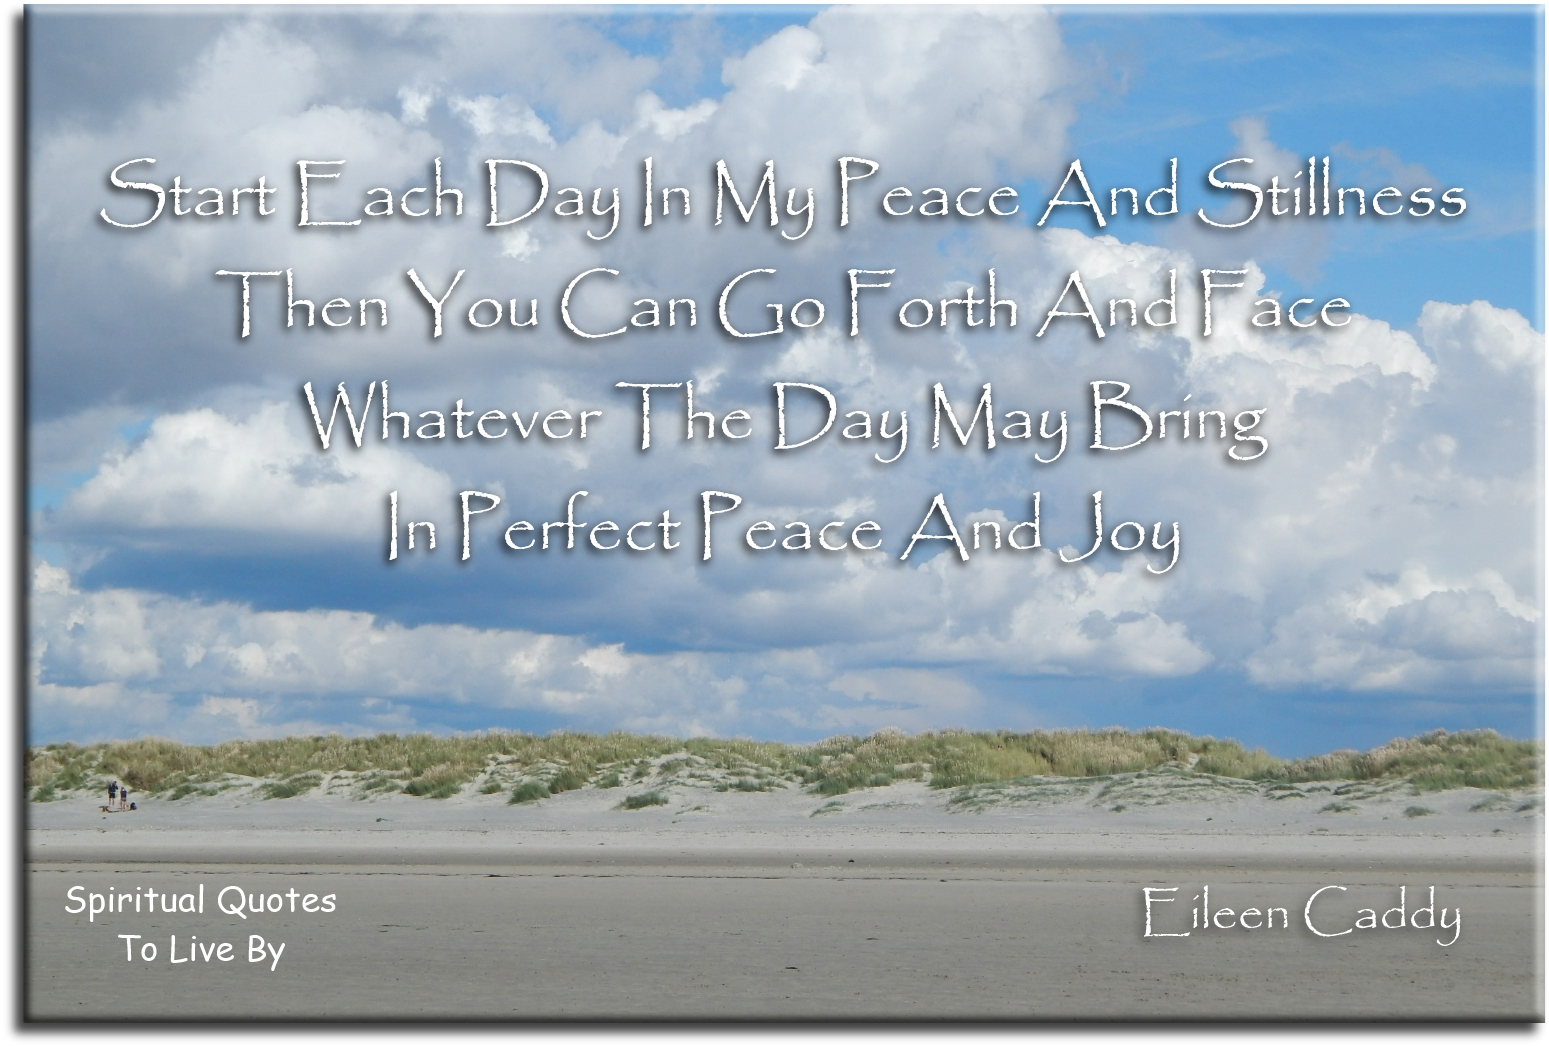 Eileen Caddy quote: Start each day in my peace and stillness, then you can go forth and face whatever the day may bring, in perfect peace and joy. - Spiritual Quotes To Live By